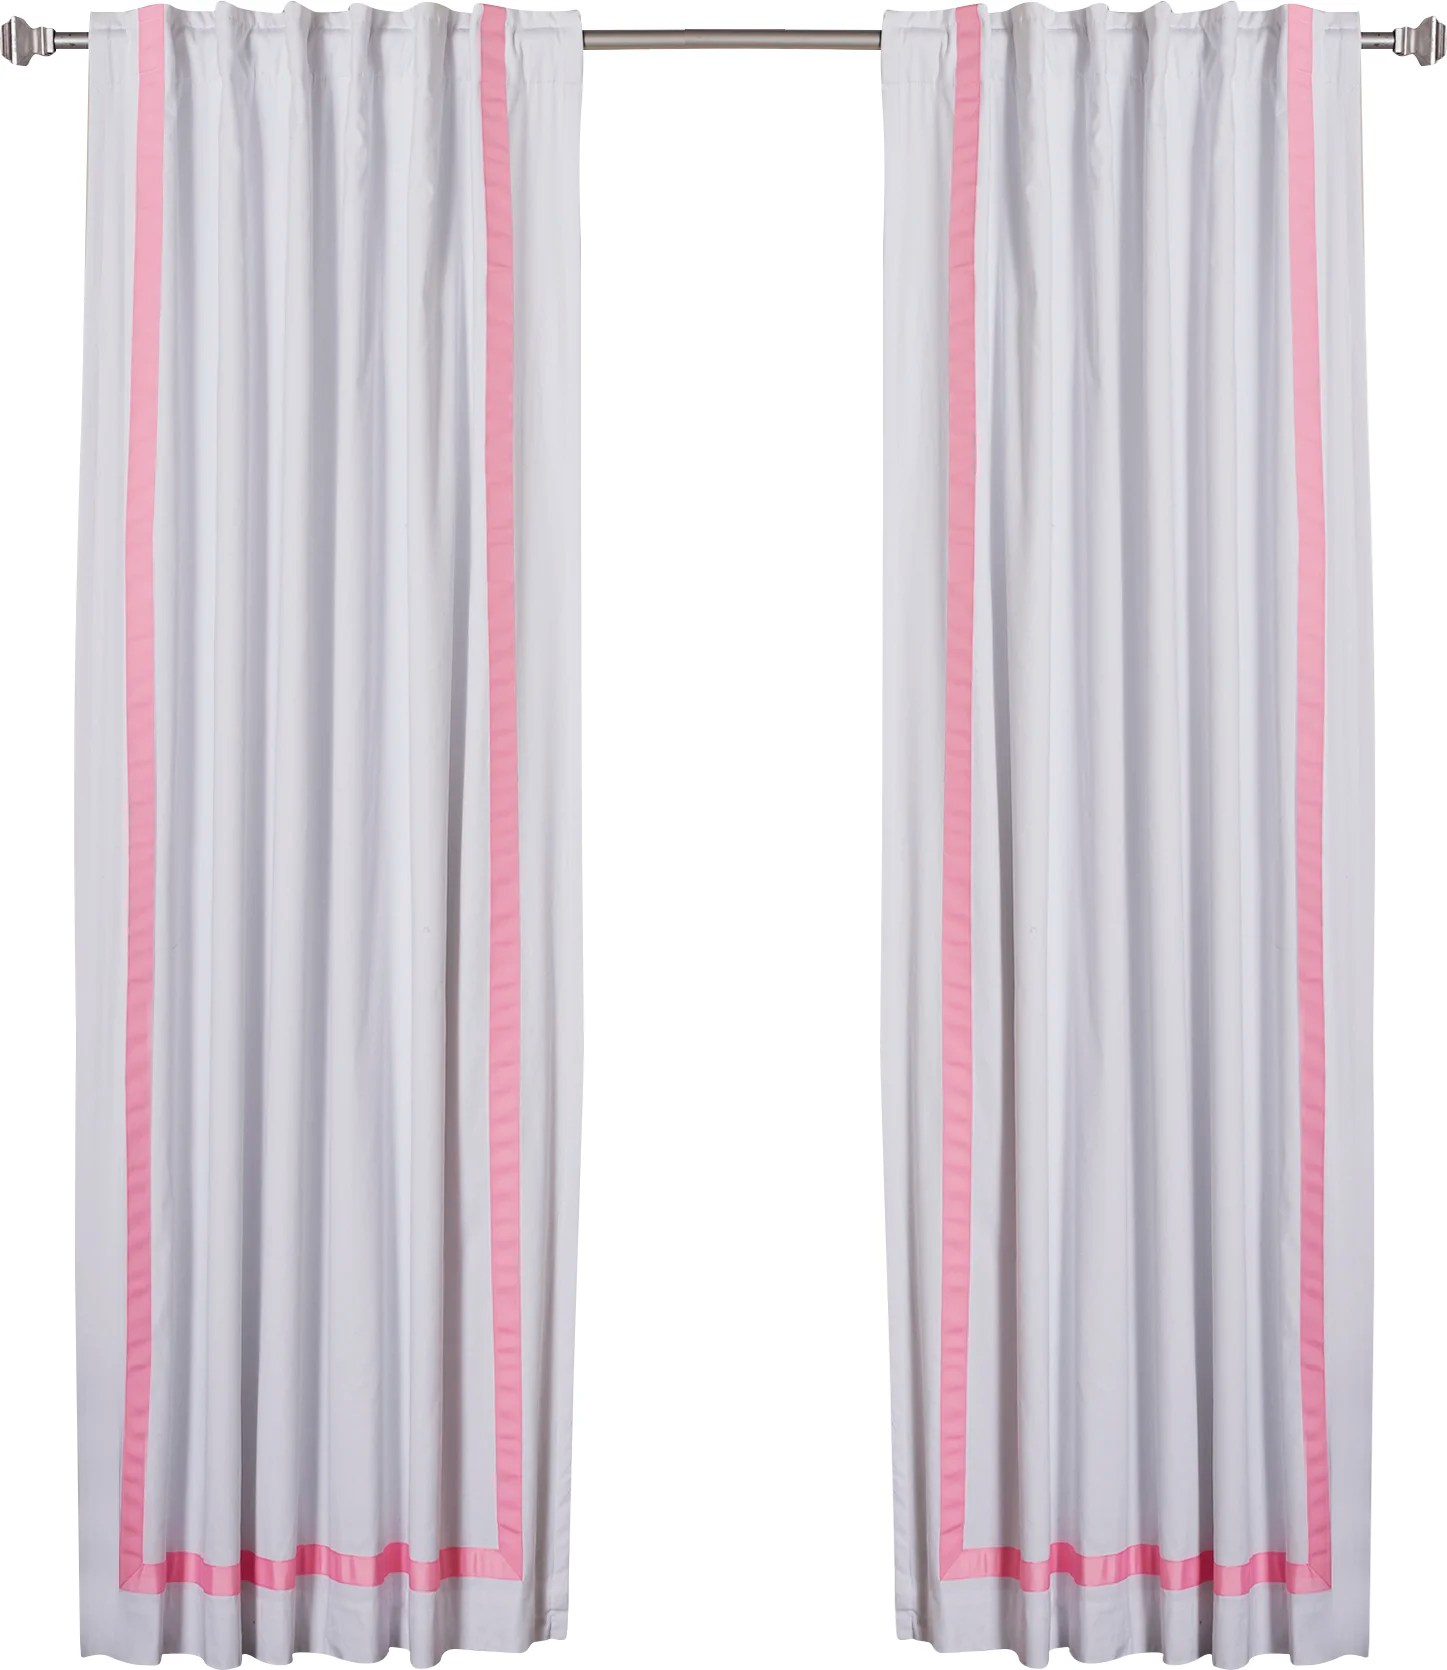 Ribbon Trim Curtains Grosgrain Ribbon Striped Blackout Thermal Rod Pocket Curtain Panels